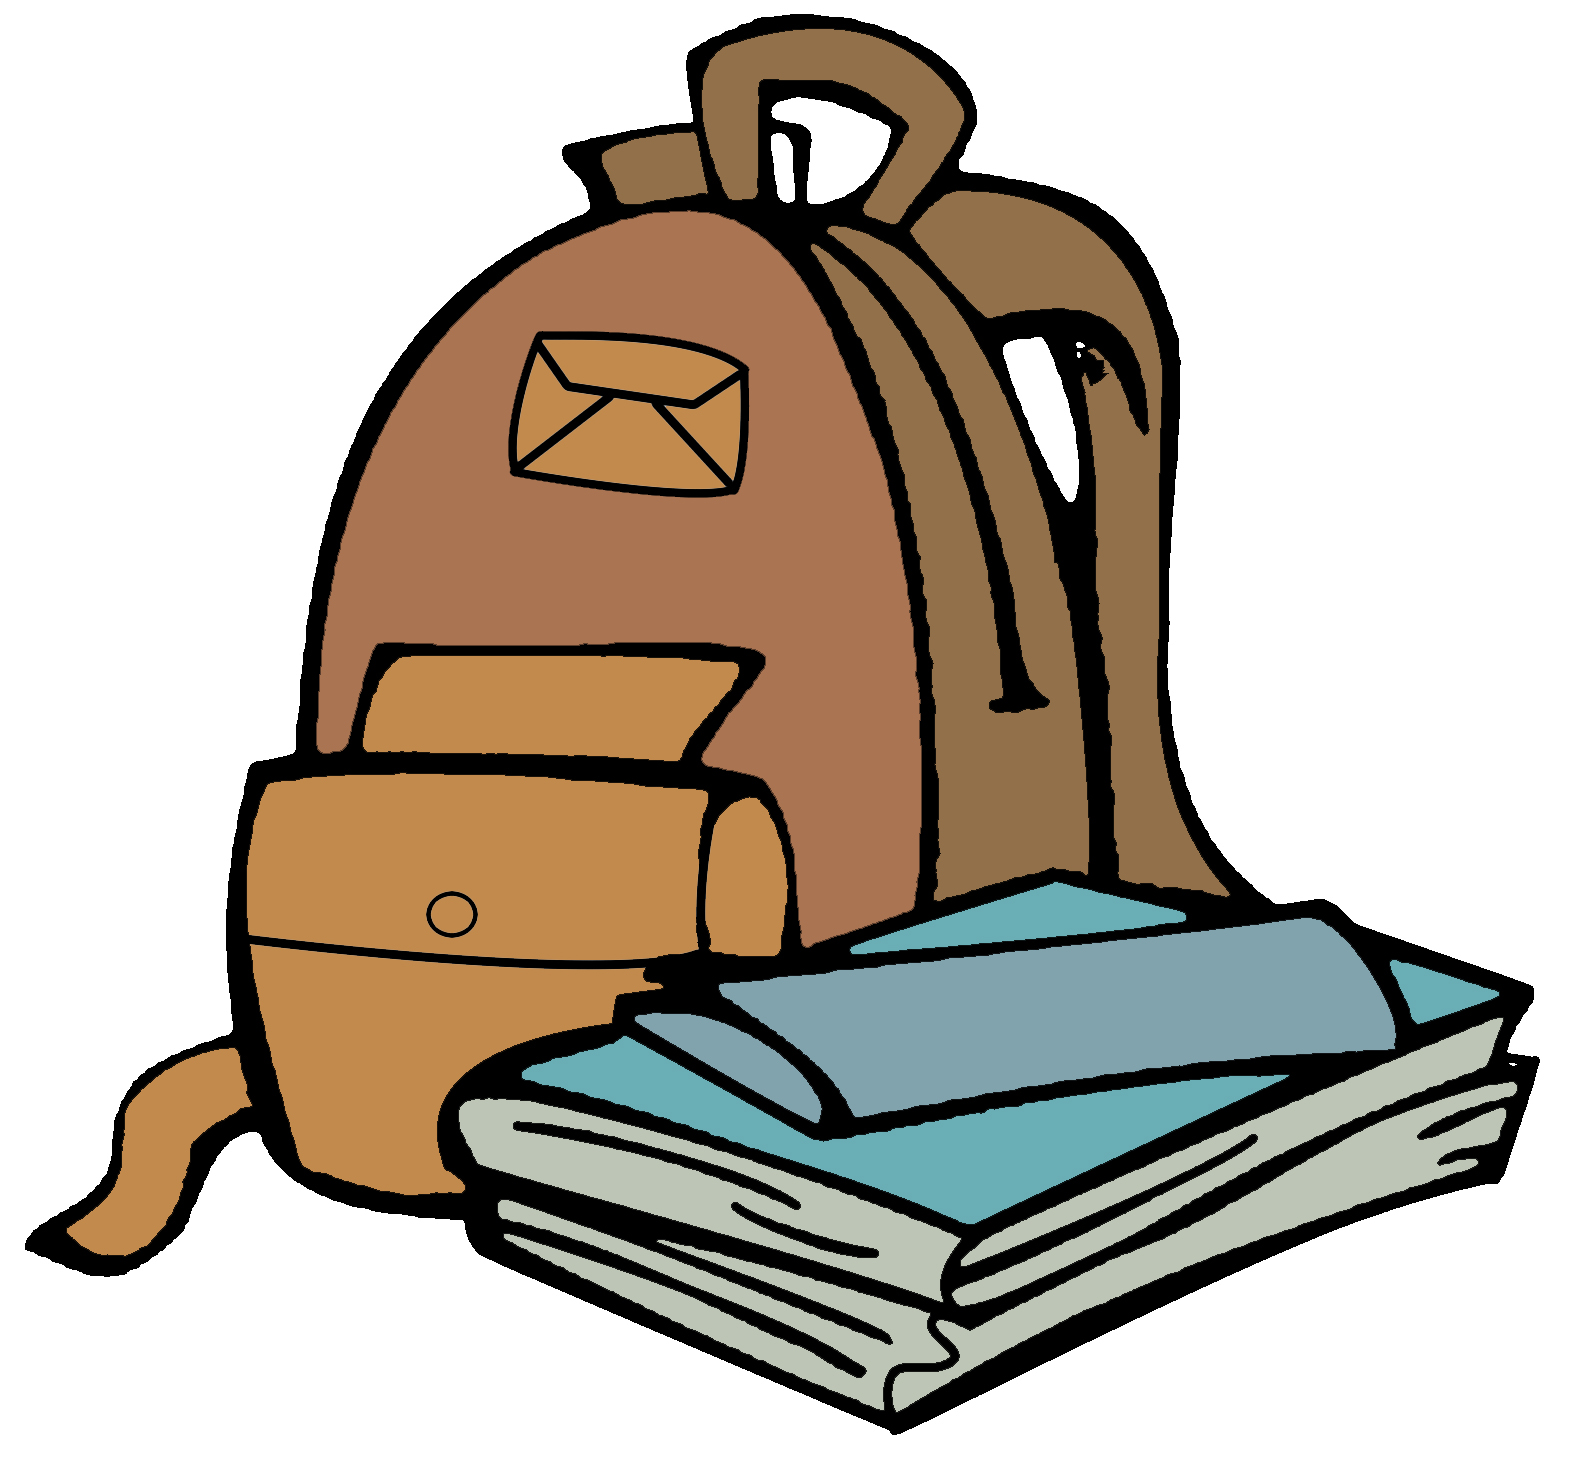 School panda free images. Backpack clipart lunch